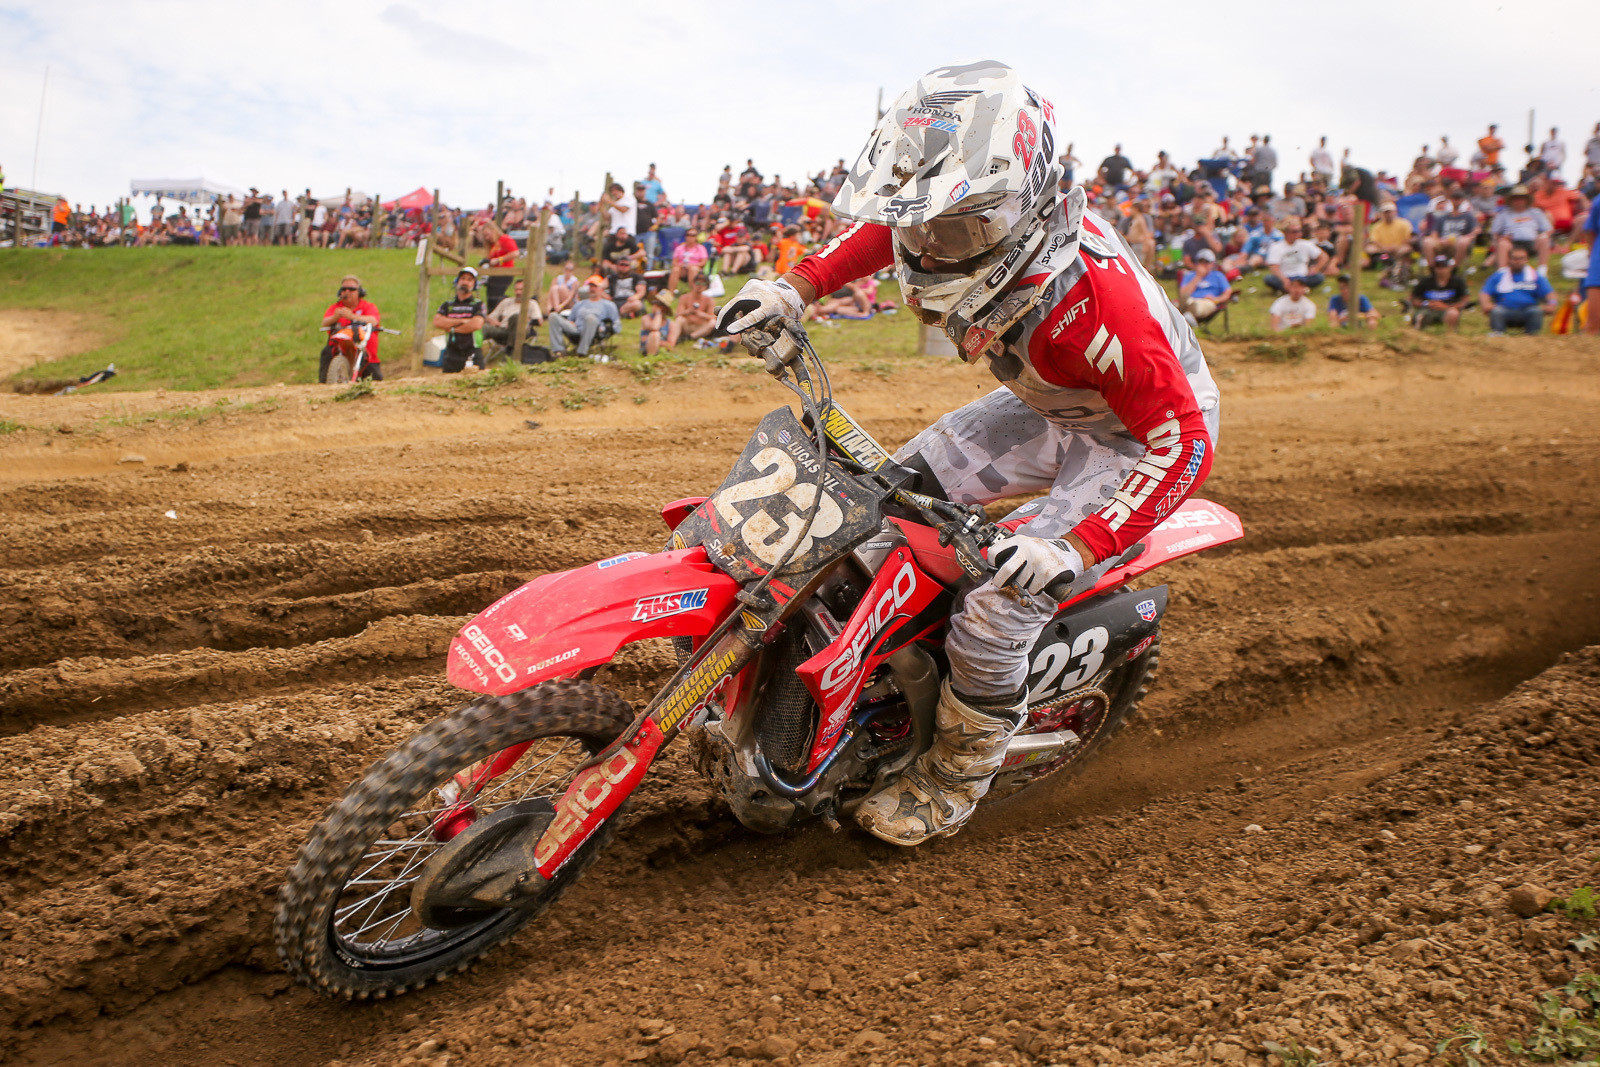 Chase Sexton Out for RedBud Motocross National